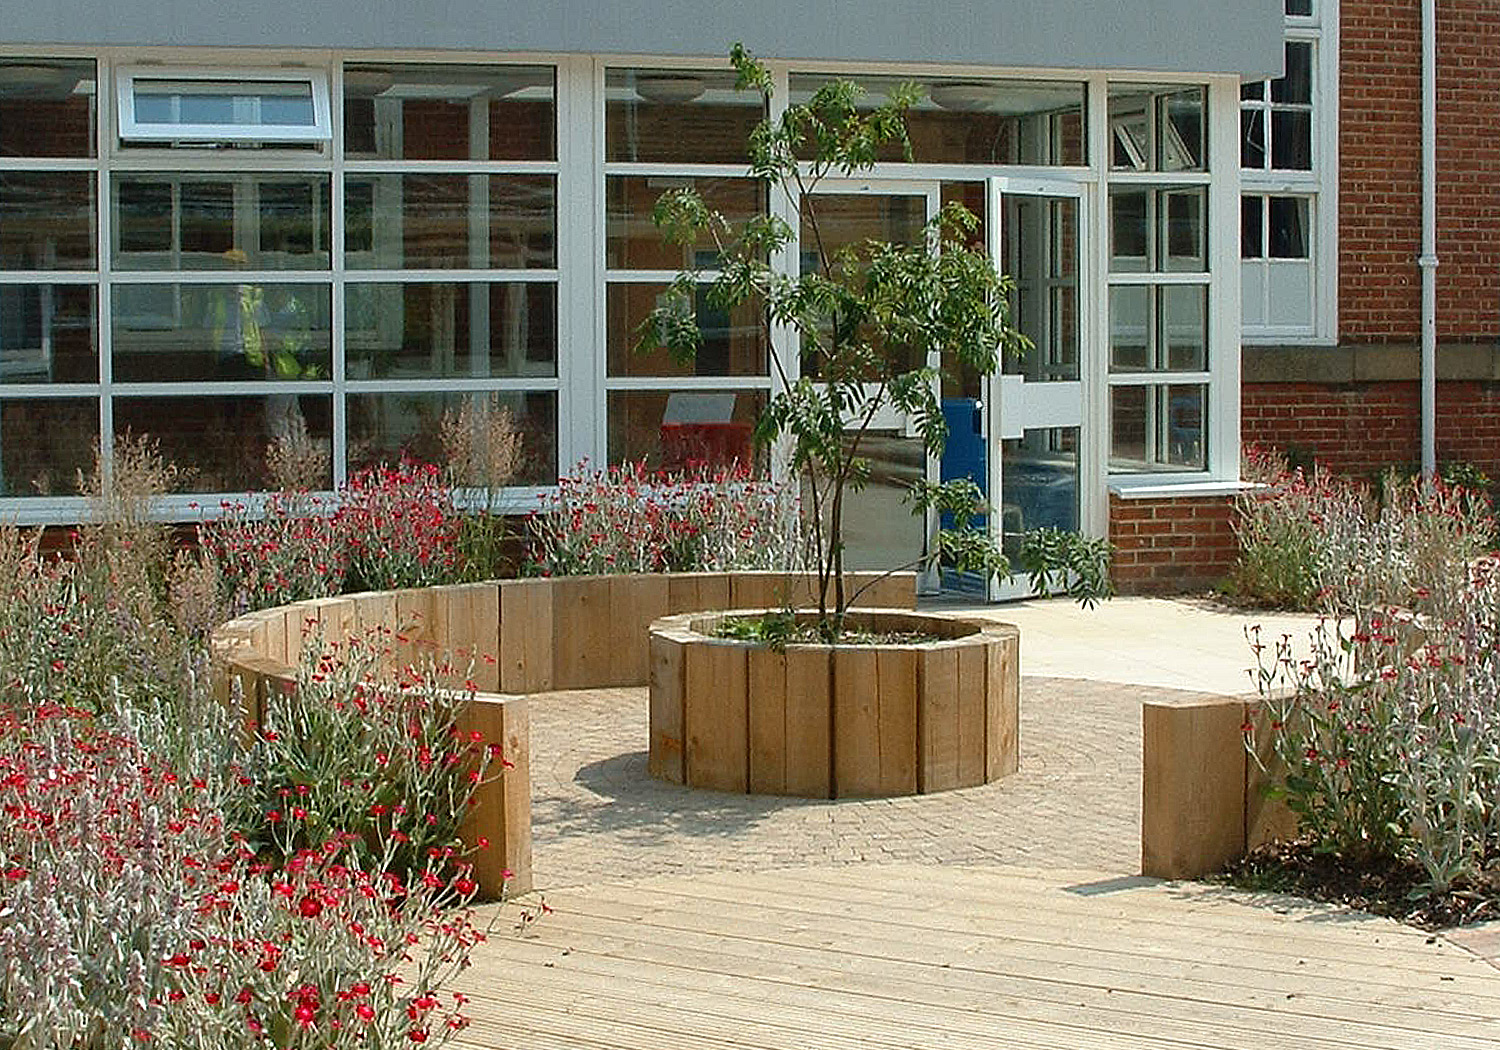 Projects-Education-Clacton-Planting-1500x1050